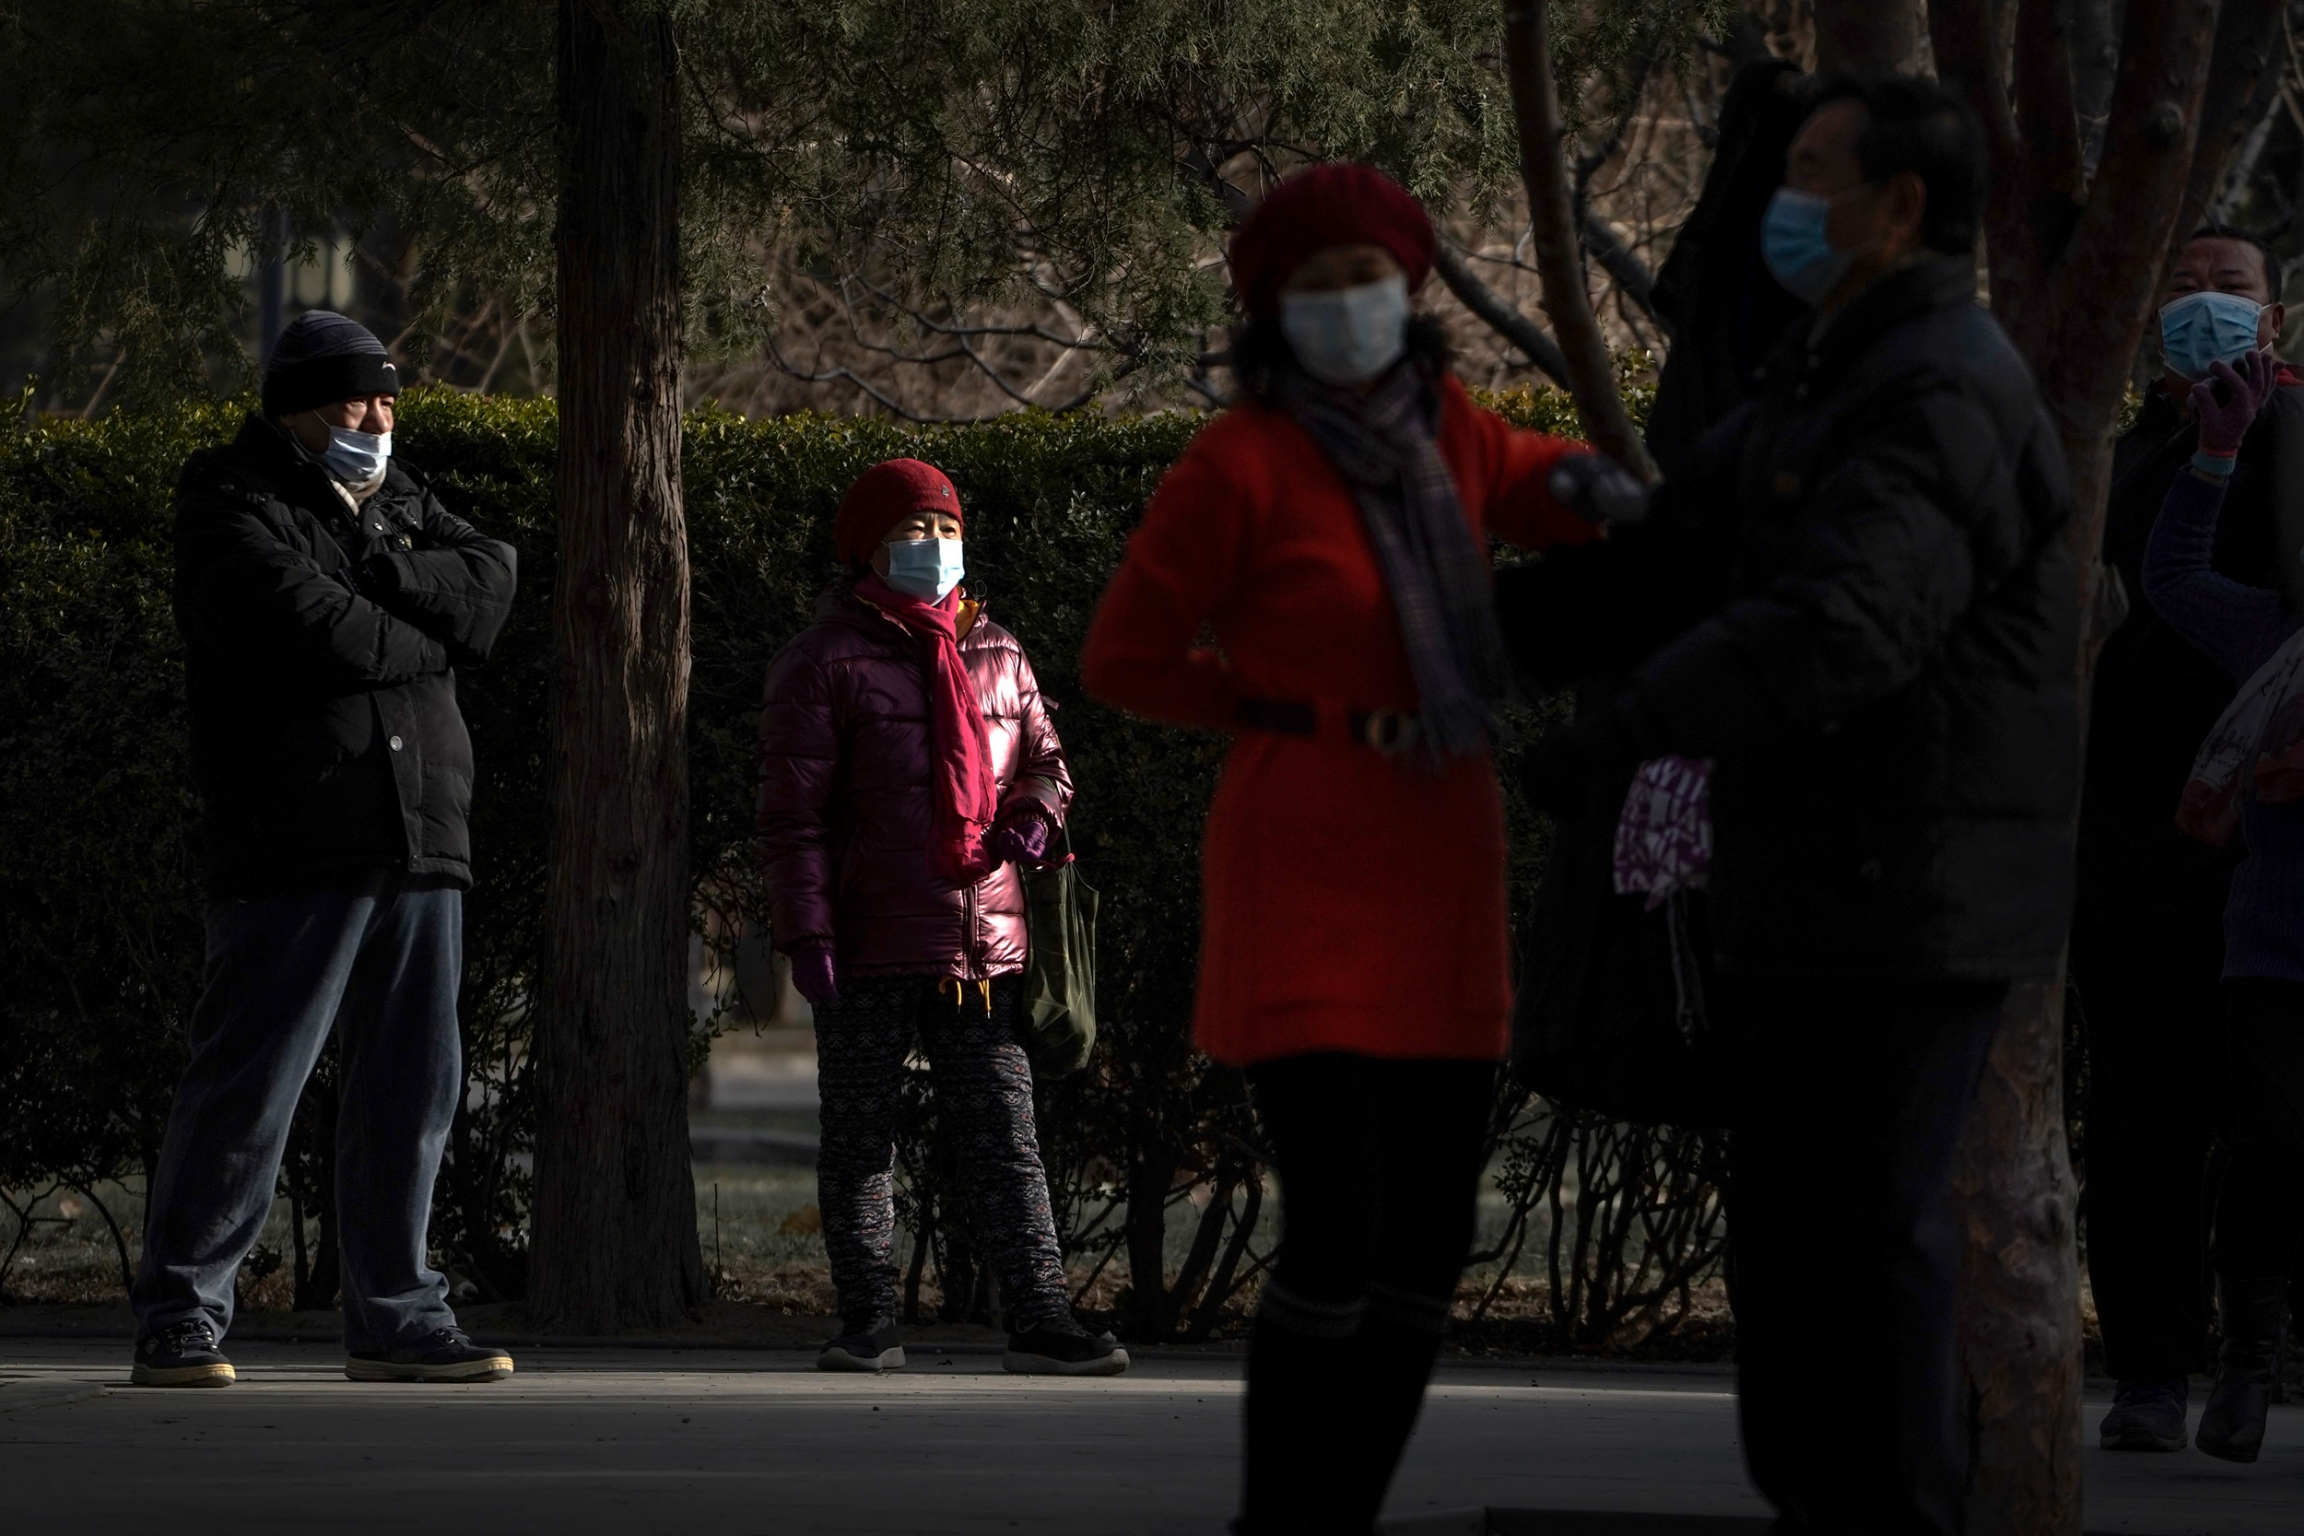 Several people are shown standing in a park and wearing face masks and winter jackes=ts.